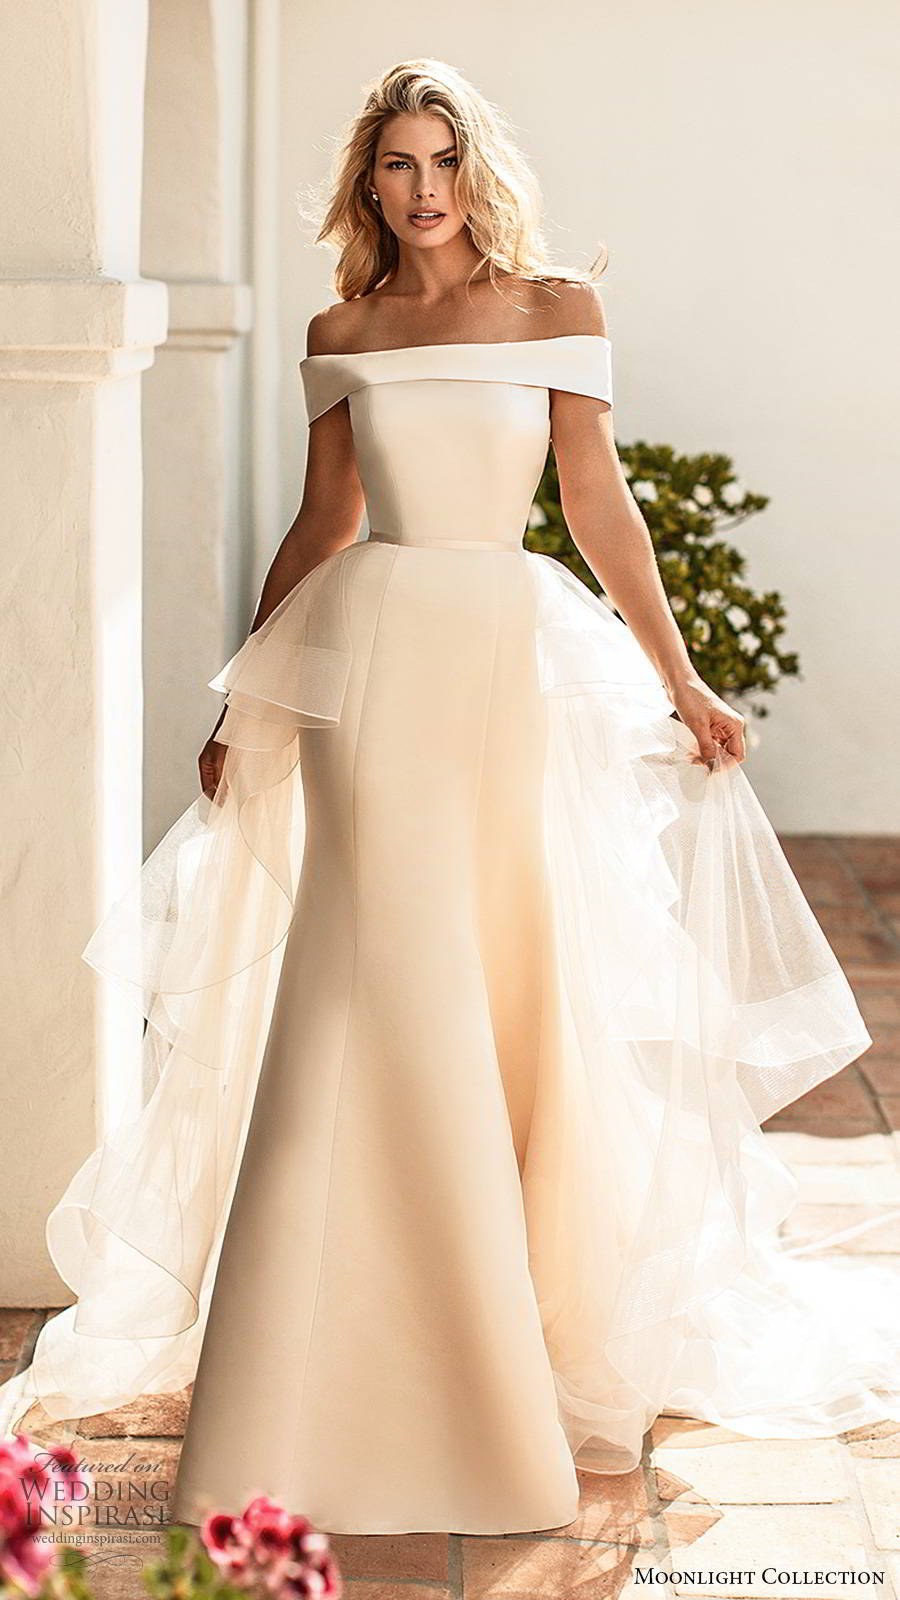 moonlight collection spring 2020 bridal off shoulder short sleeves straight across neckline tiered a line overskirt clean minimalist fit flare mermaid wedding dress v back chapel train (8) mv